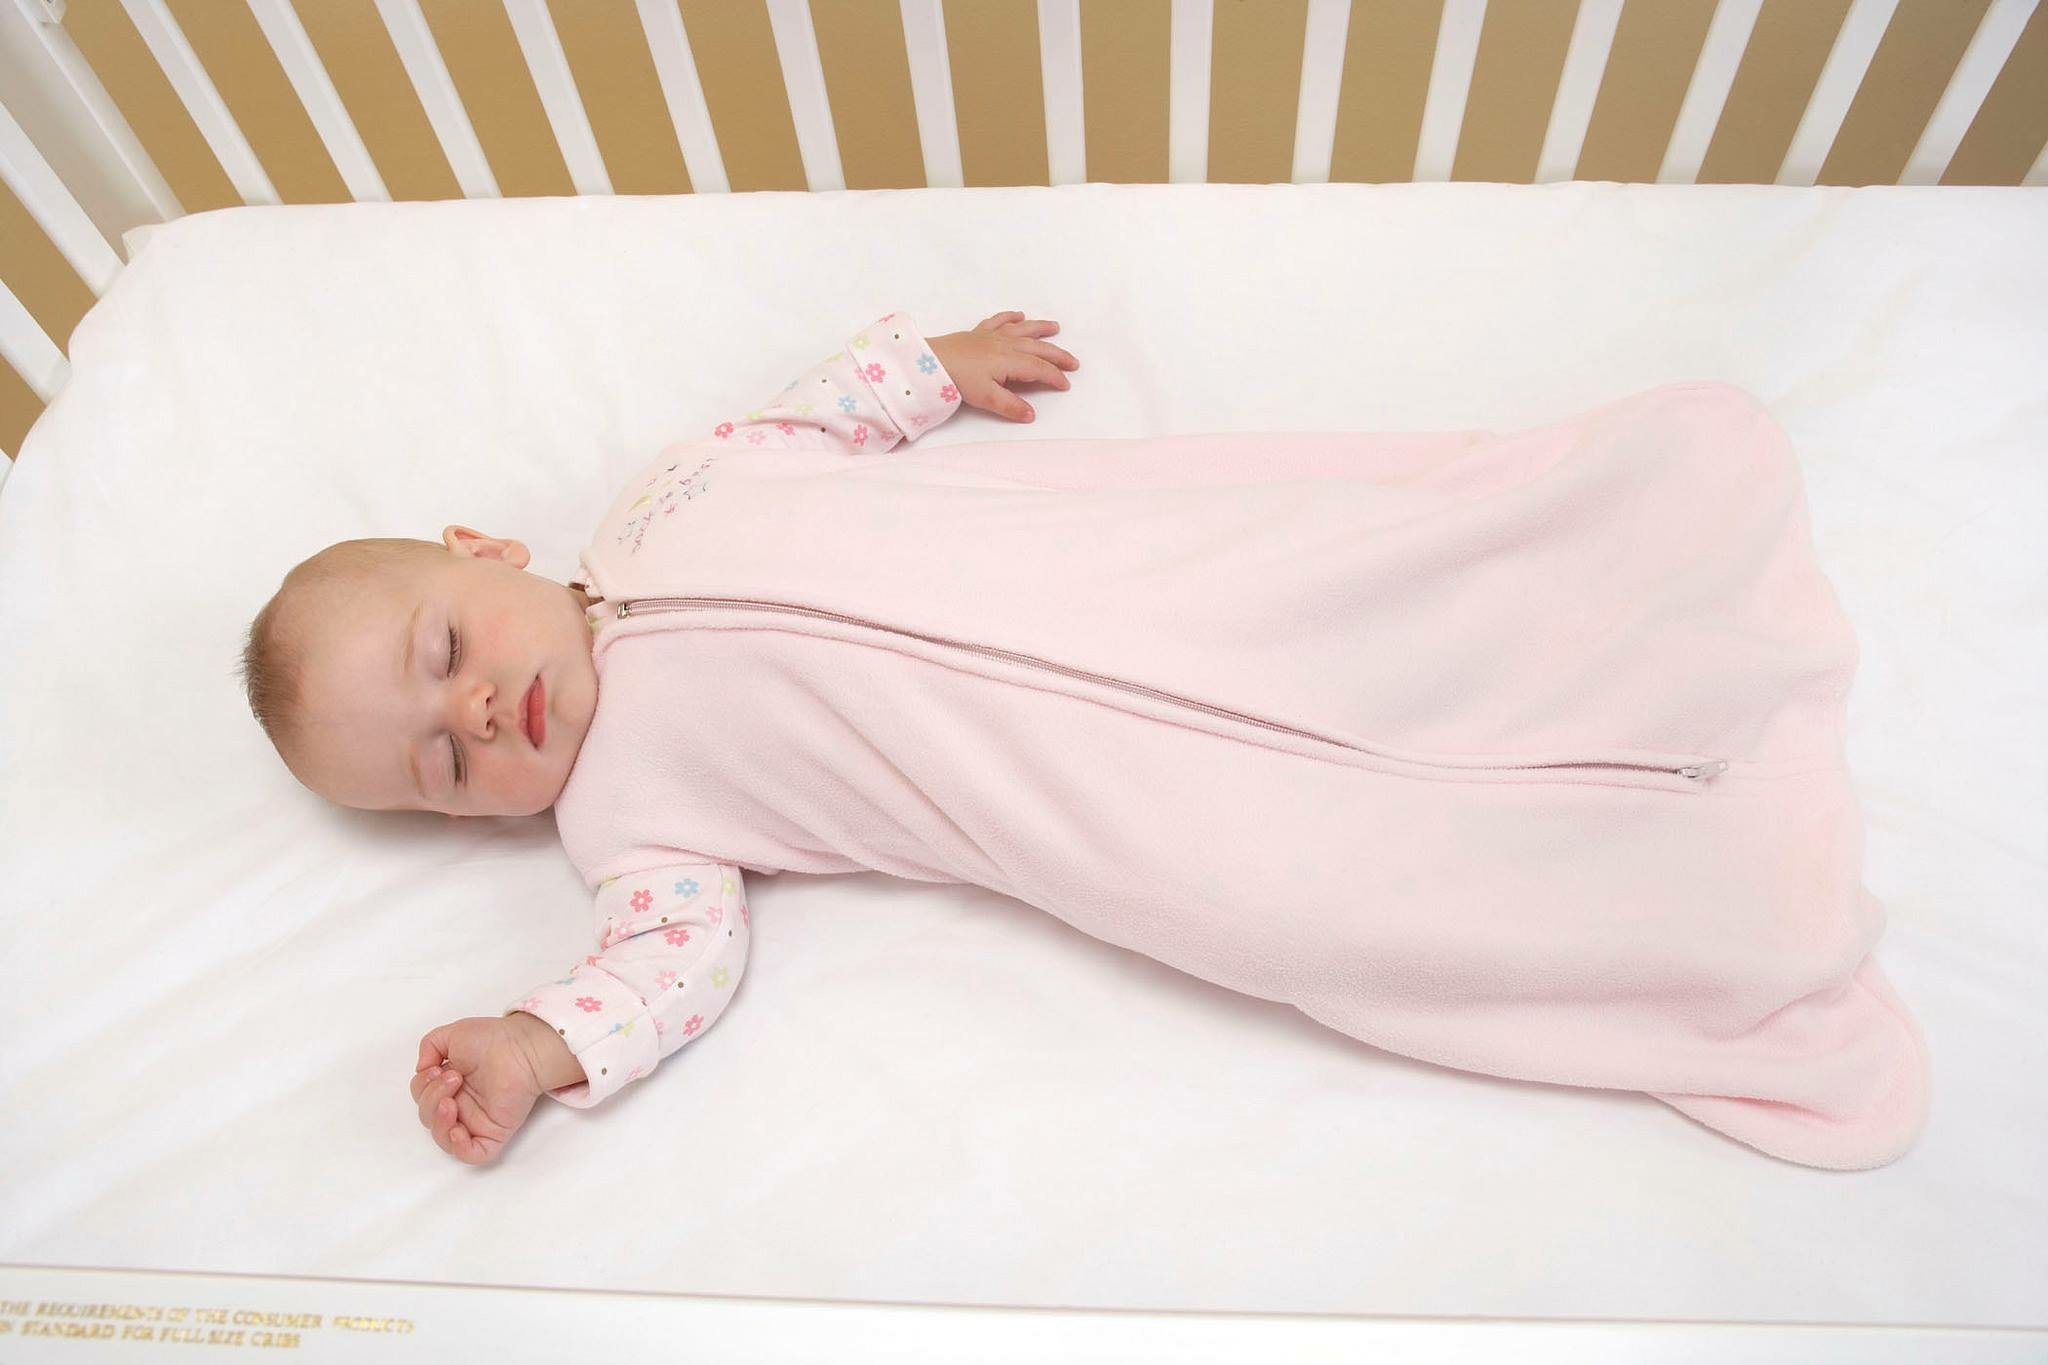 Baby in a sleep sack lying on their back on a mattress with a fitted sheet in a crib.